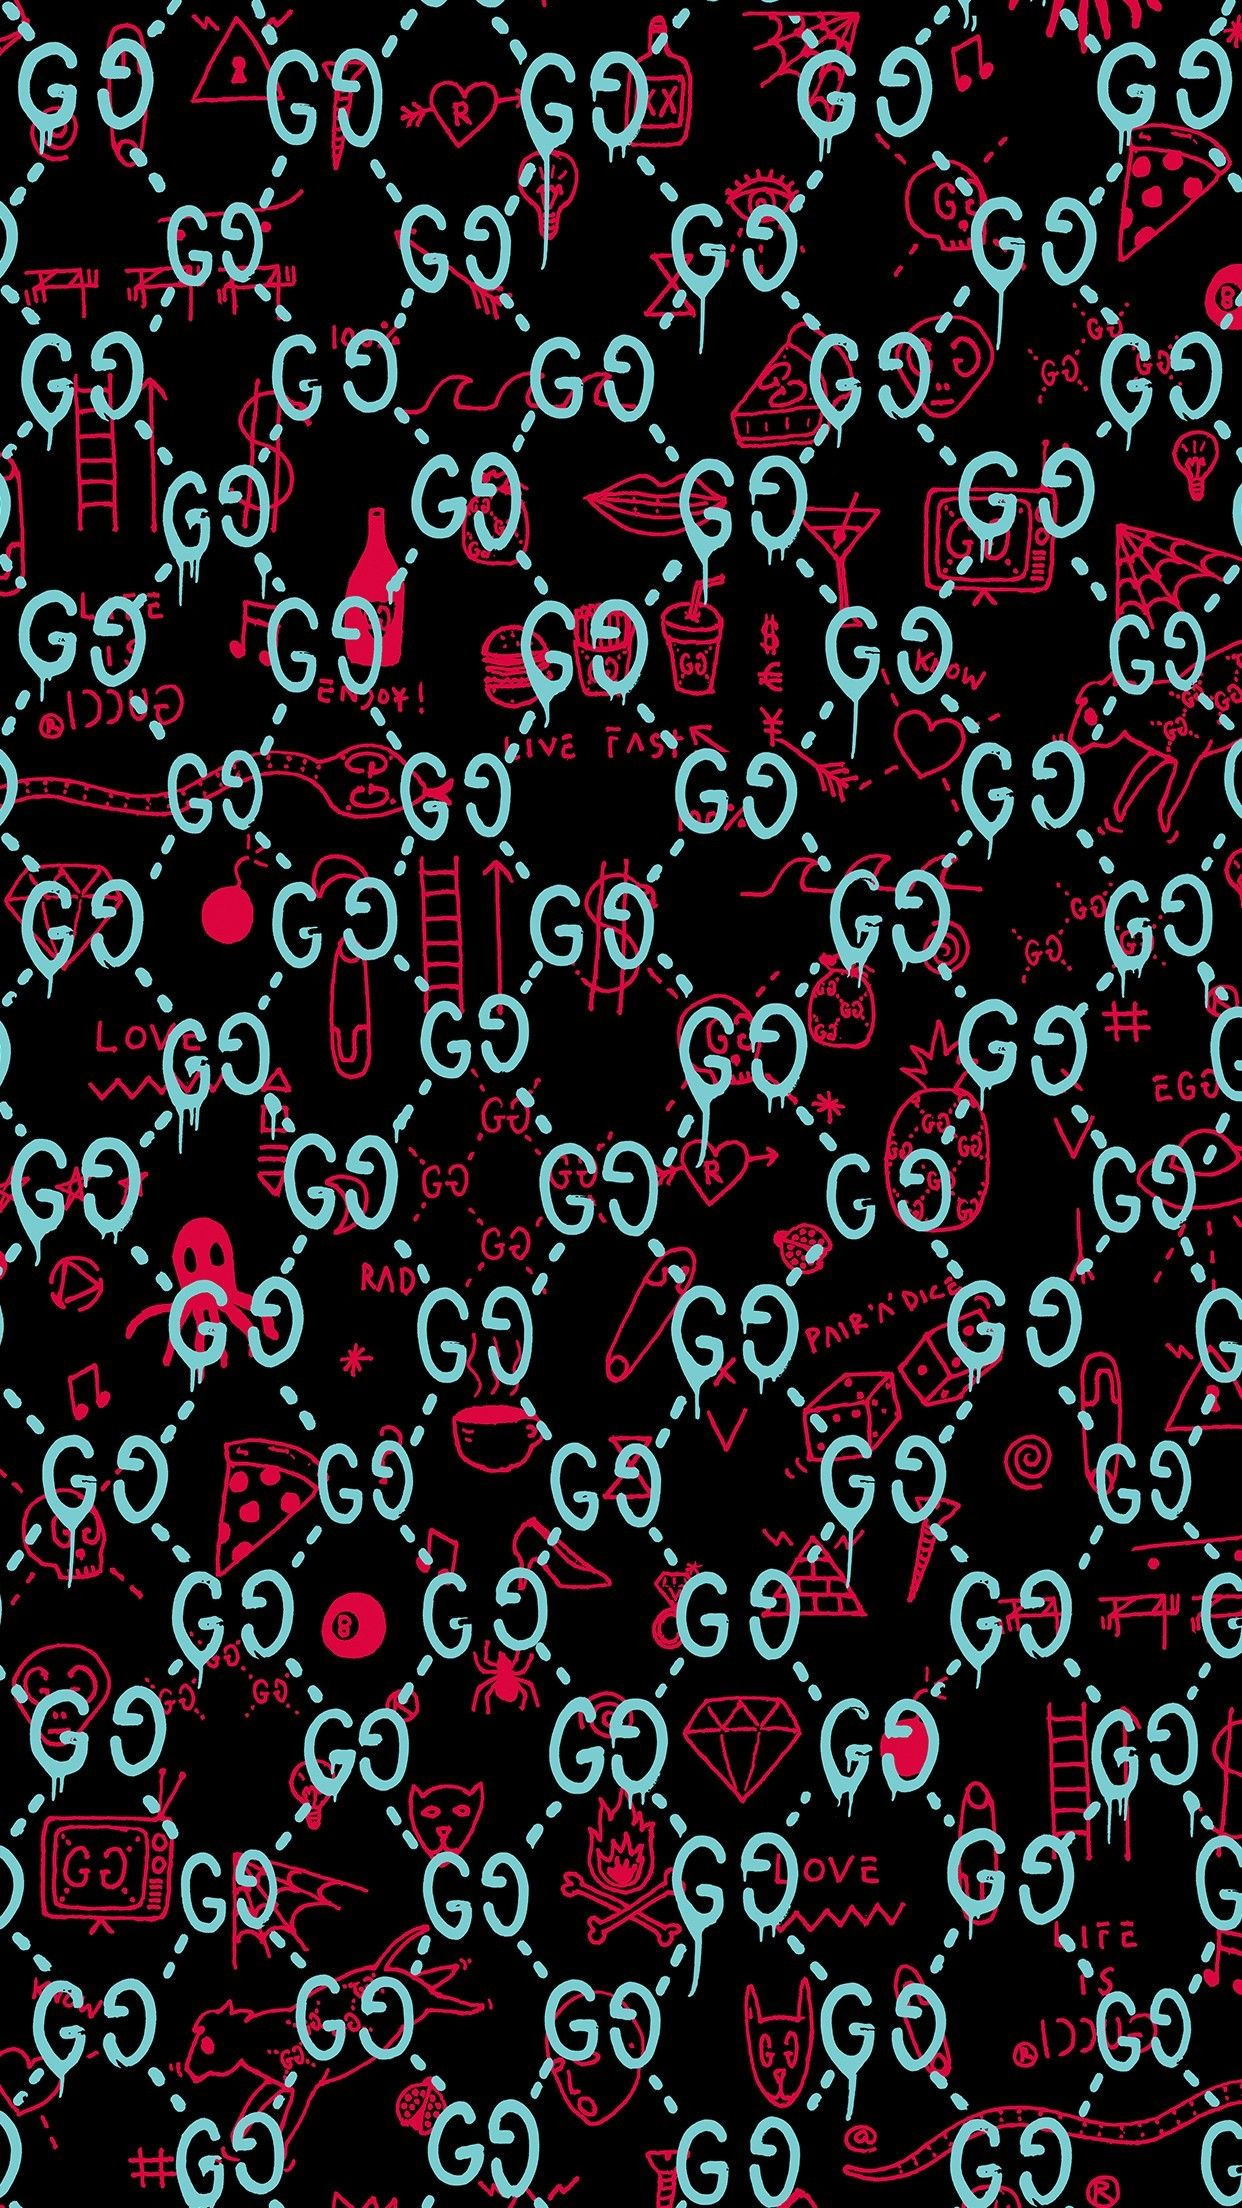 Gucci Wallpaper From Their App